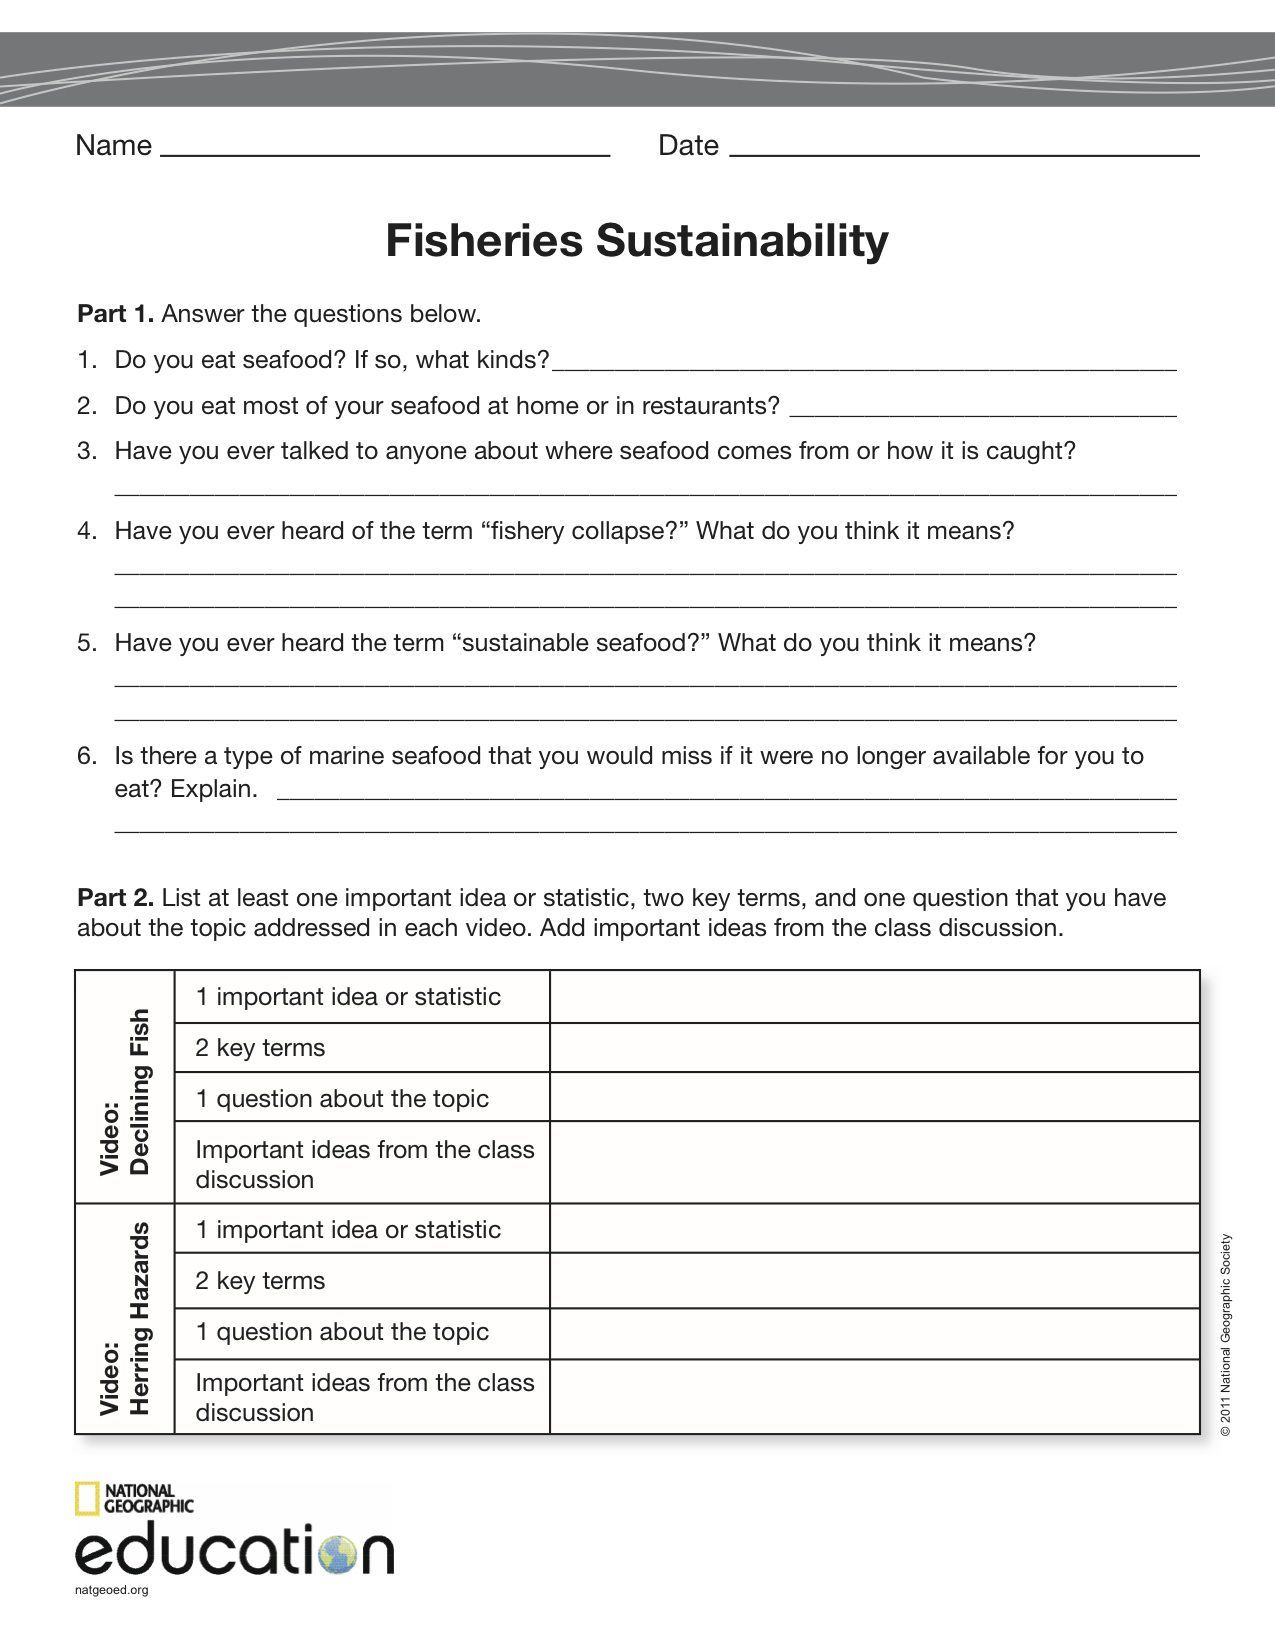 Fisheries Sustainability National Geographic Society